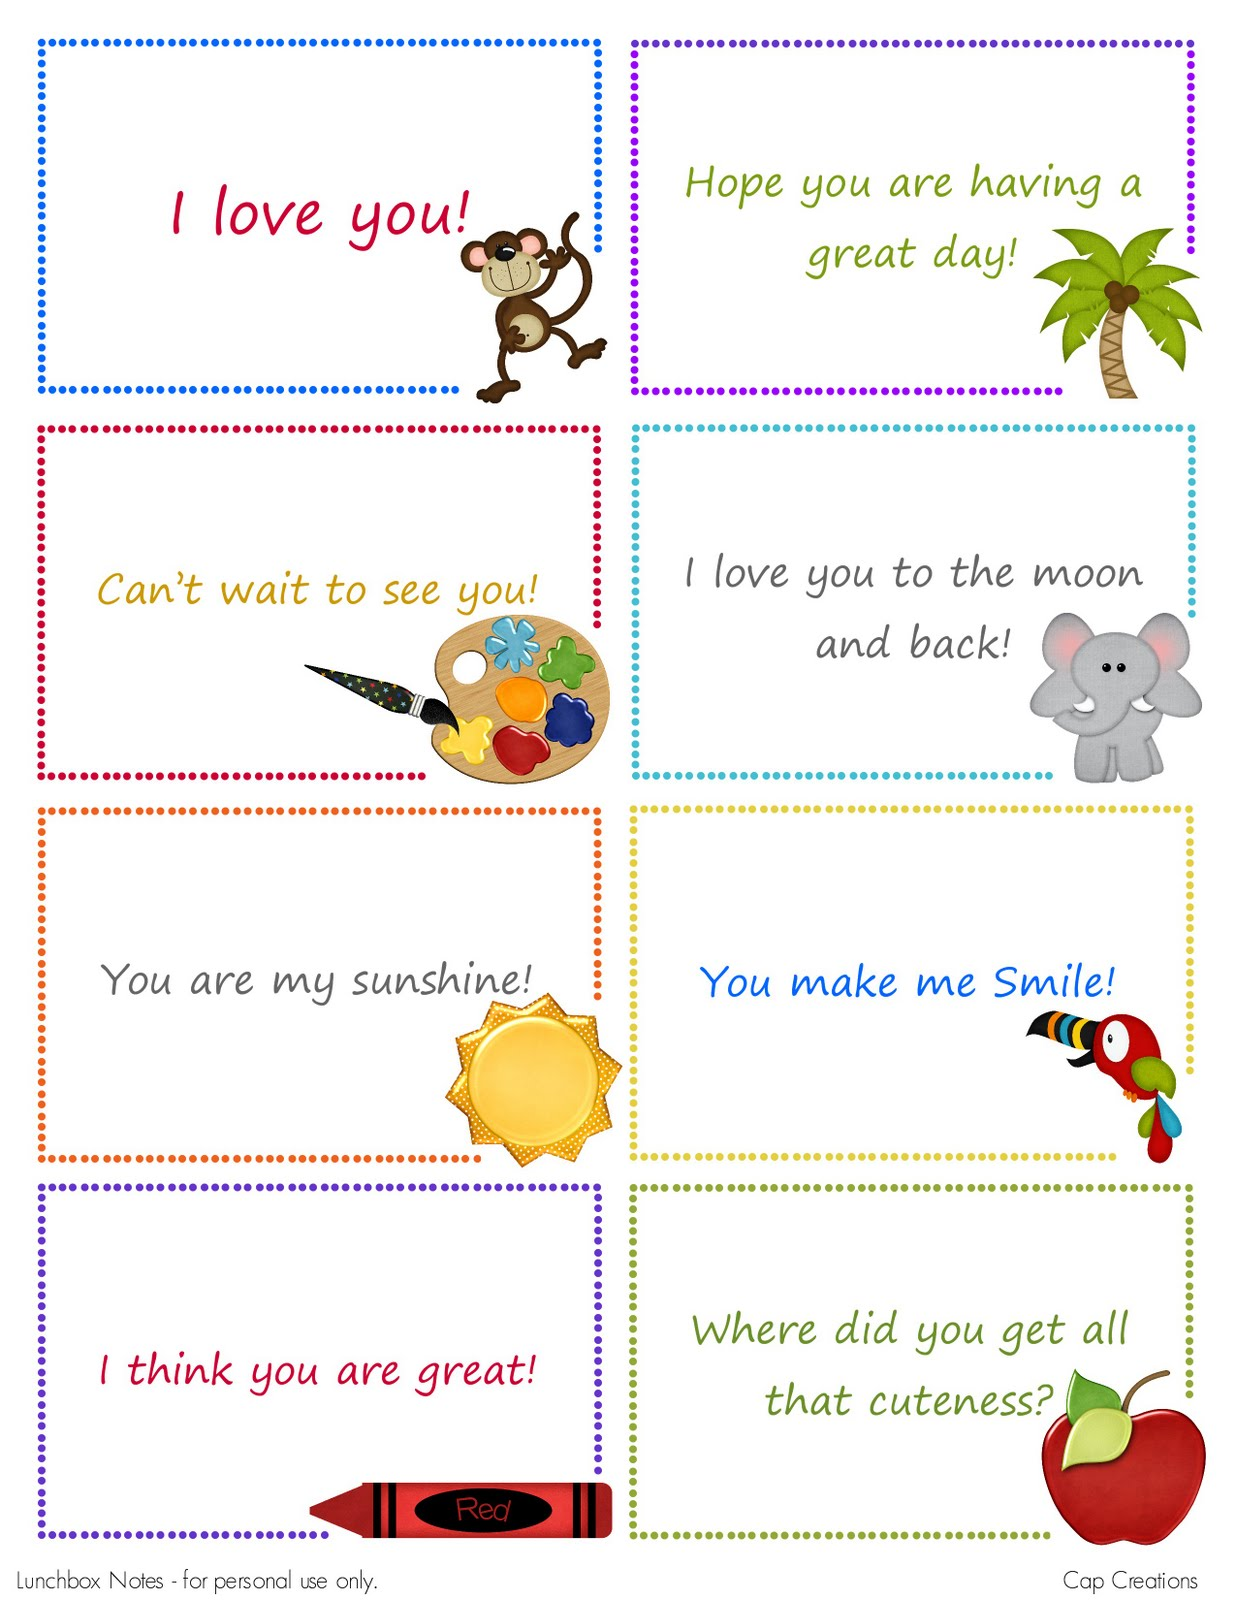 Cap Creations Free Printable Lunchbox Note Cards